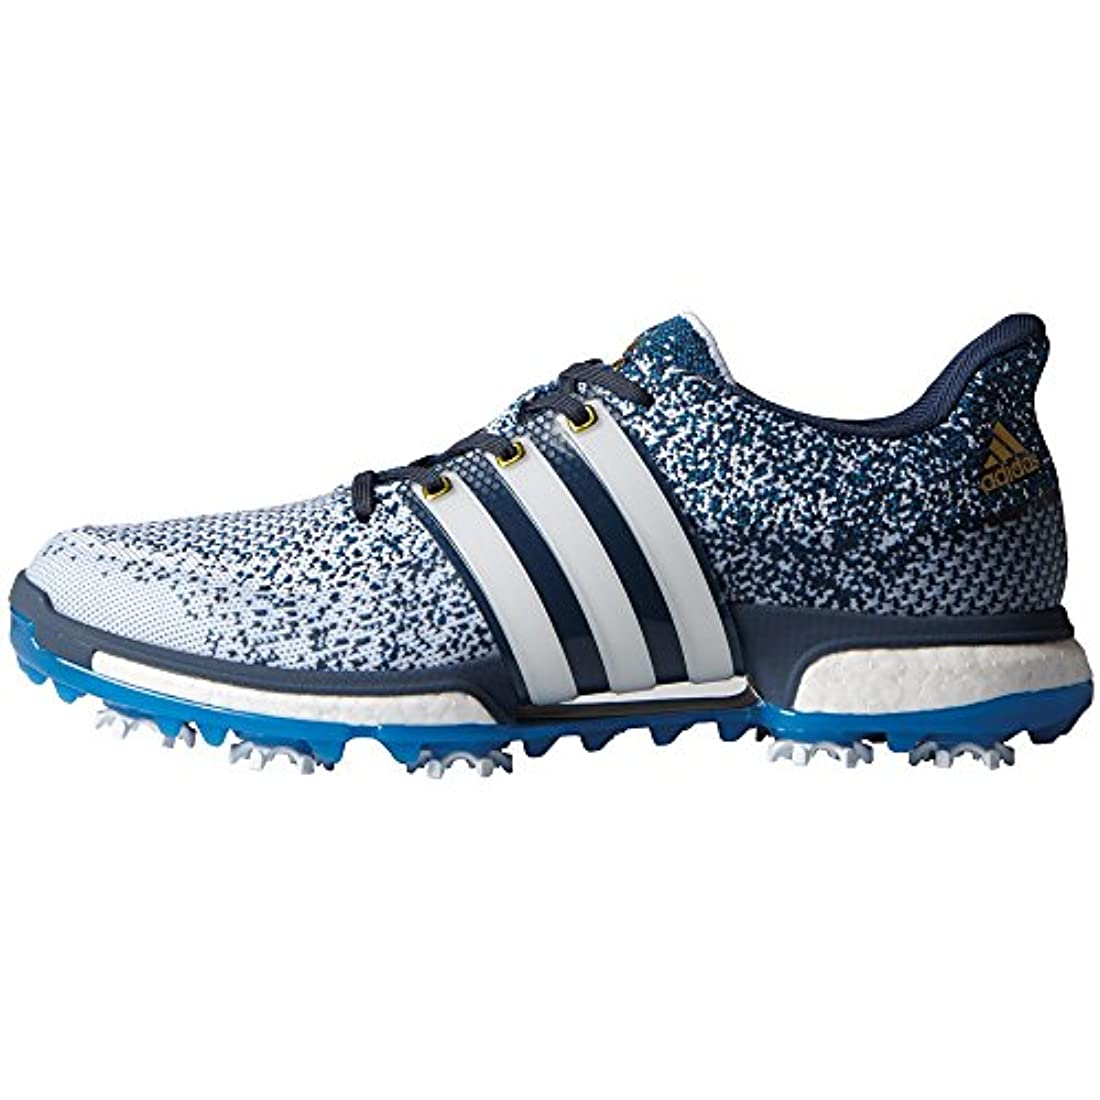 Mens Colorful Golf Shoes